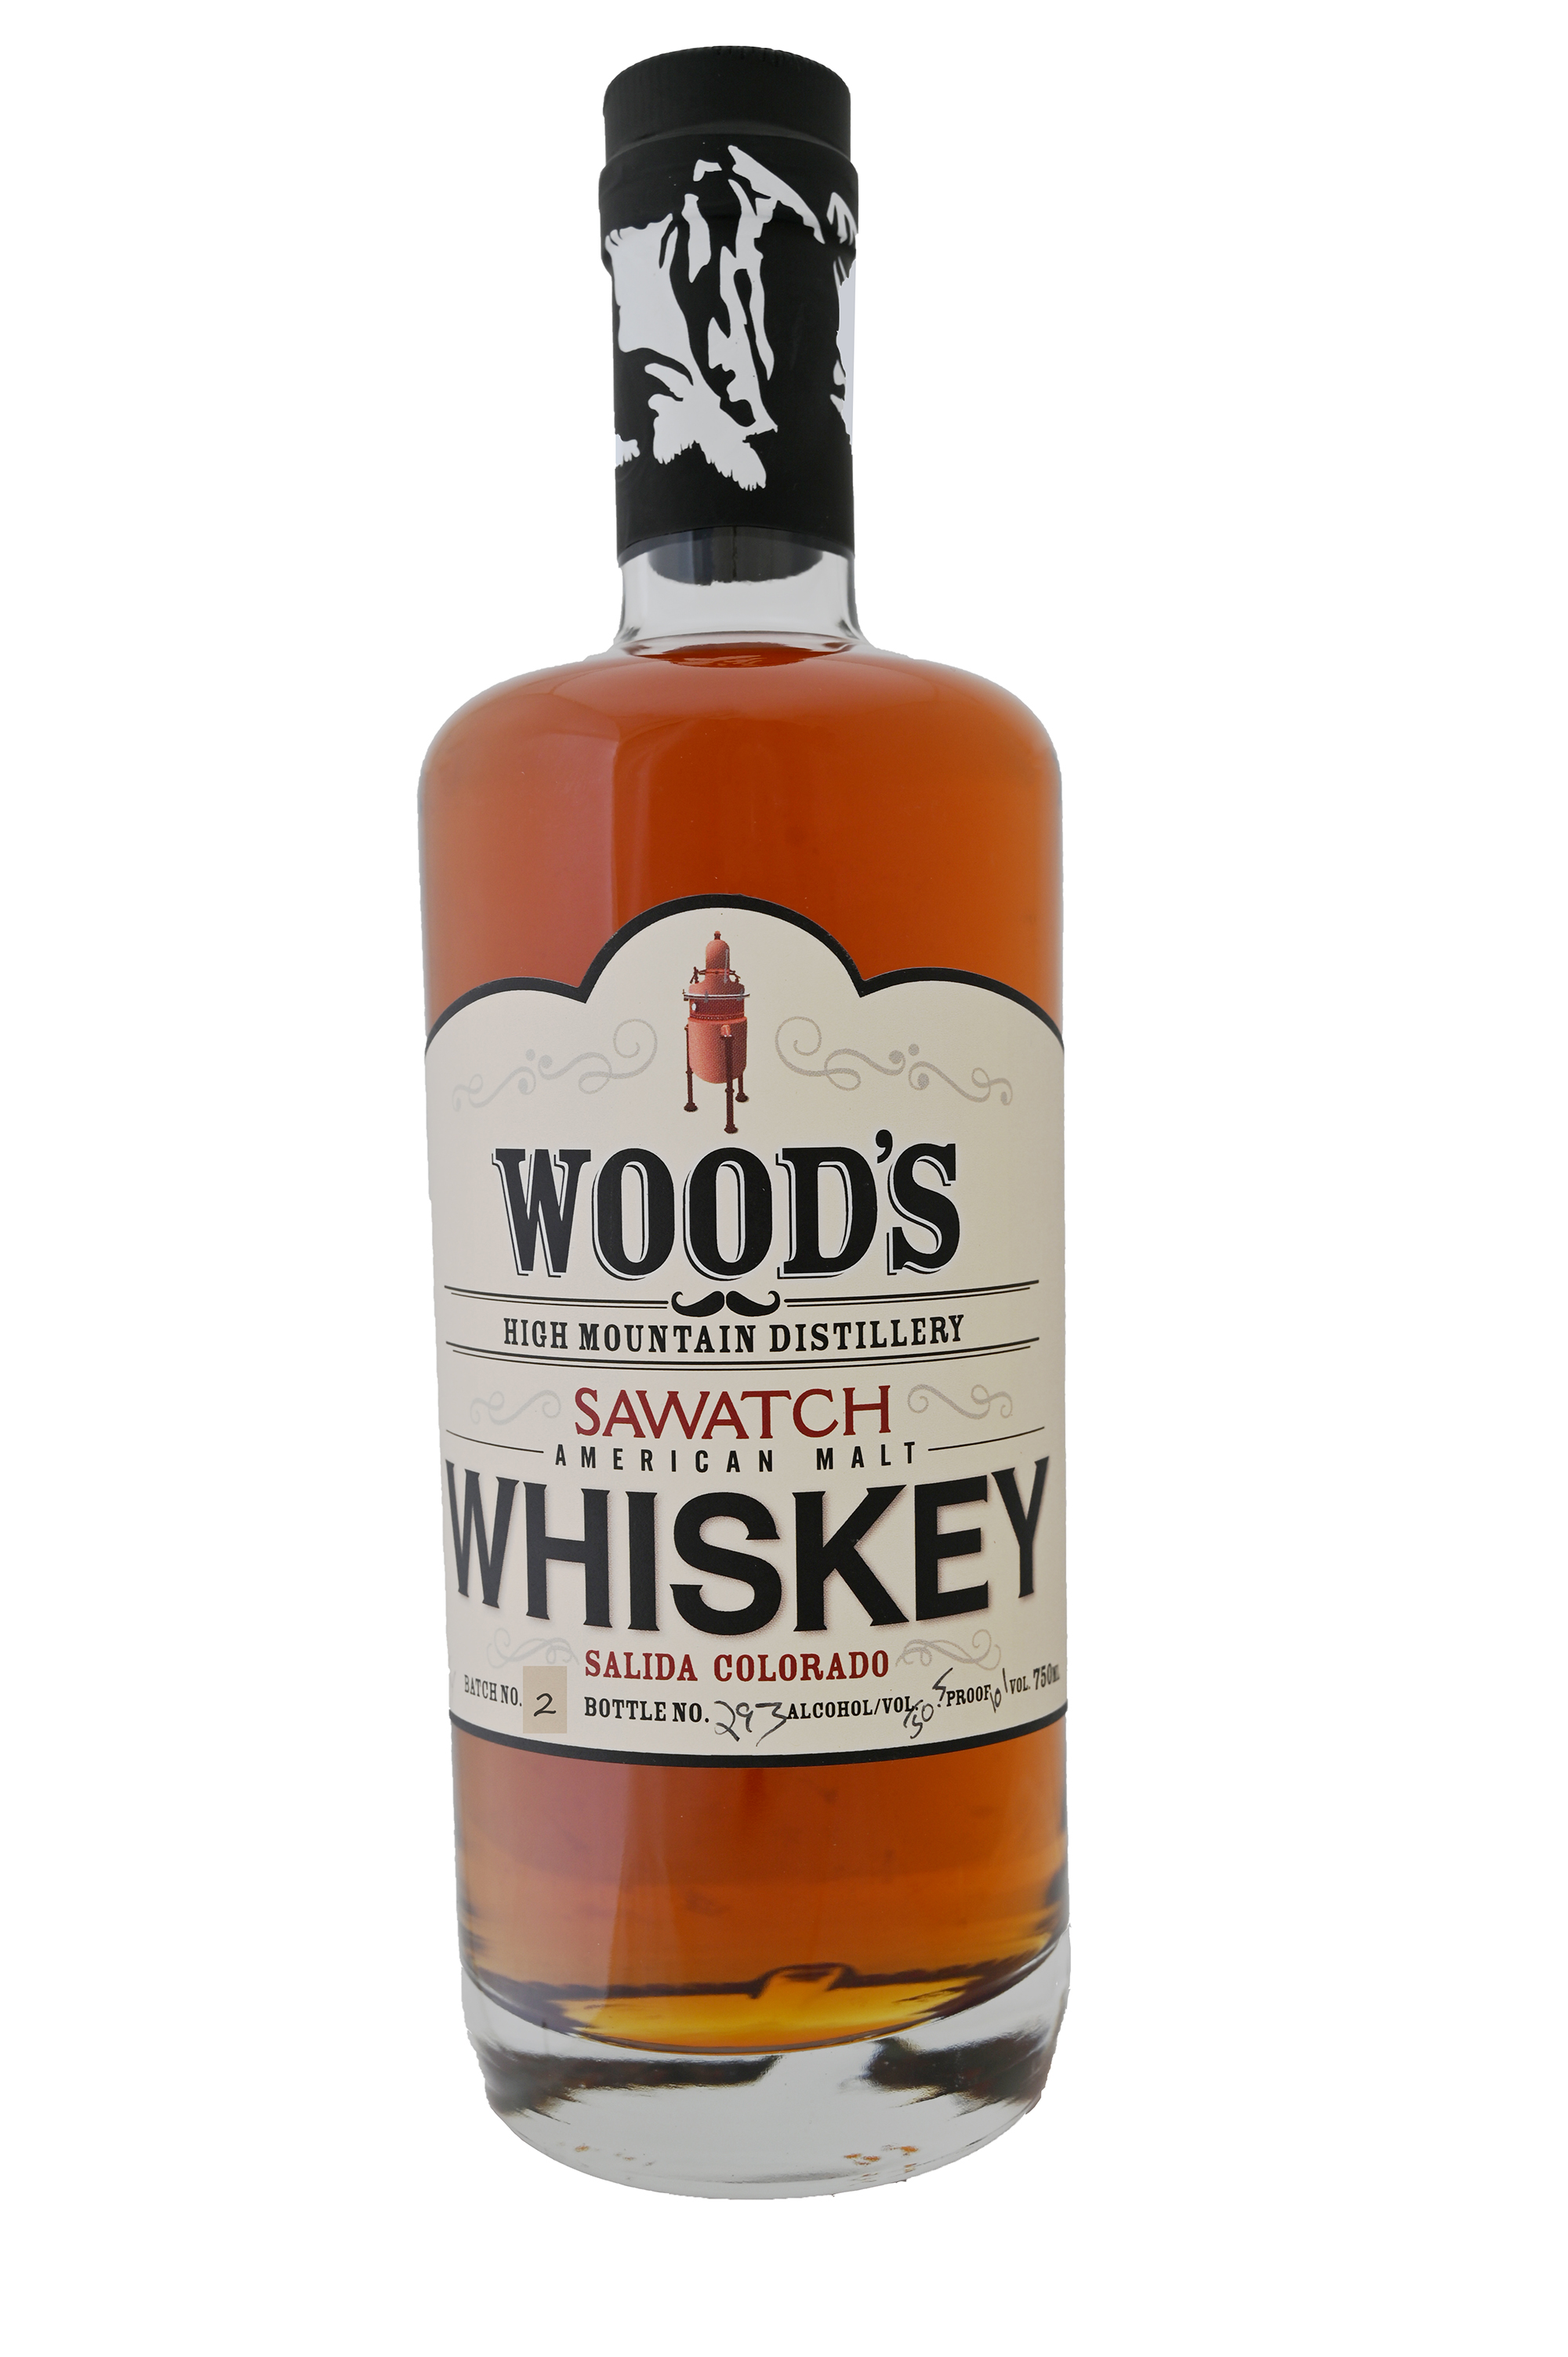 Wood's High Mountain Distillery Sawatch Whiskey